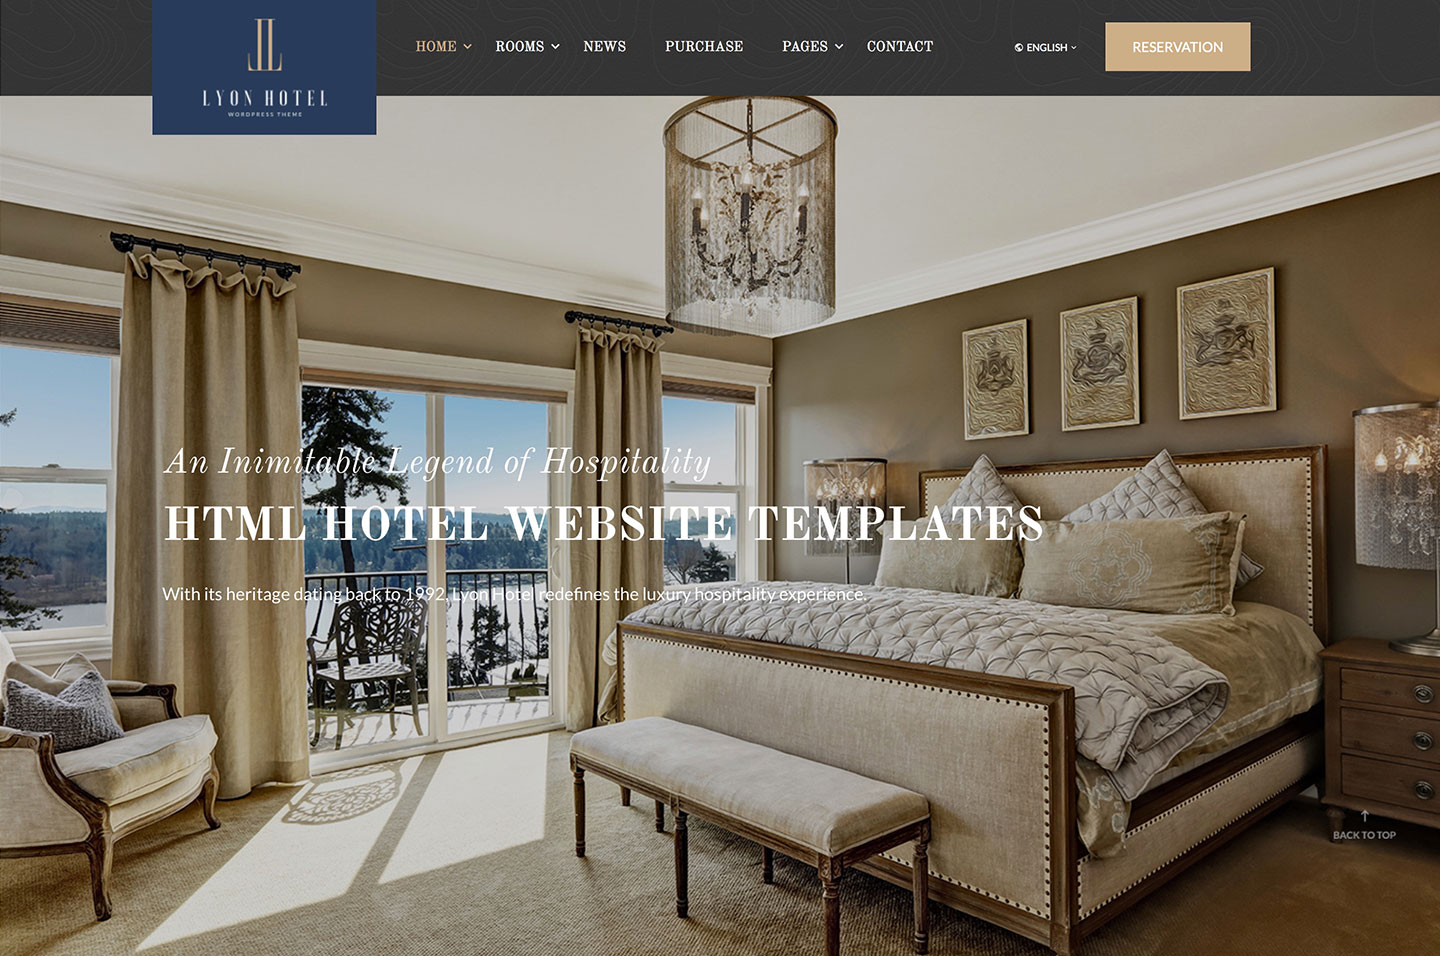 21 top html5 hotel booking website templates 2018 colorlib for Top site reservation hotel